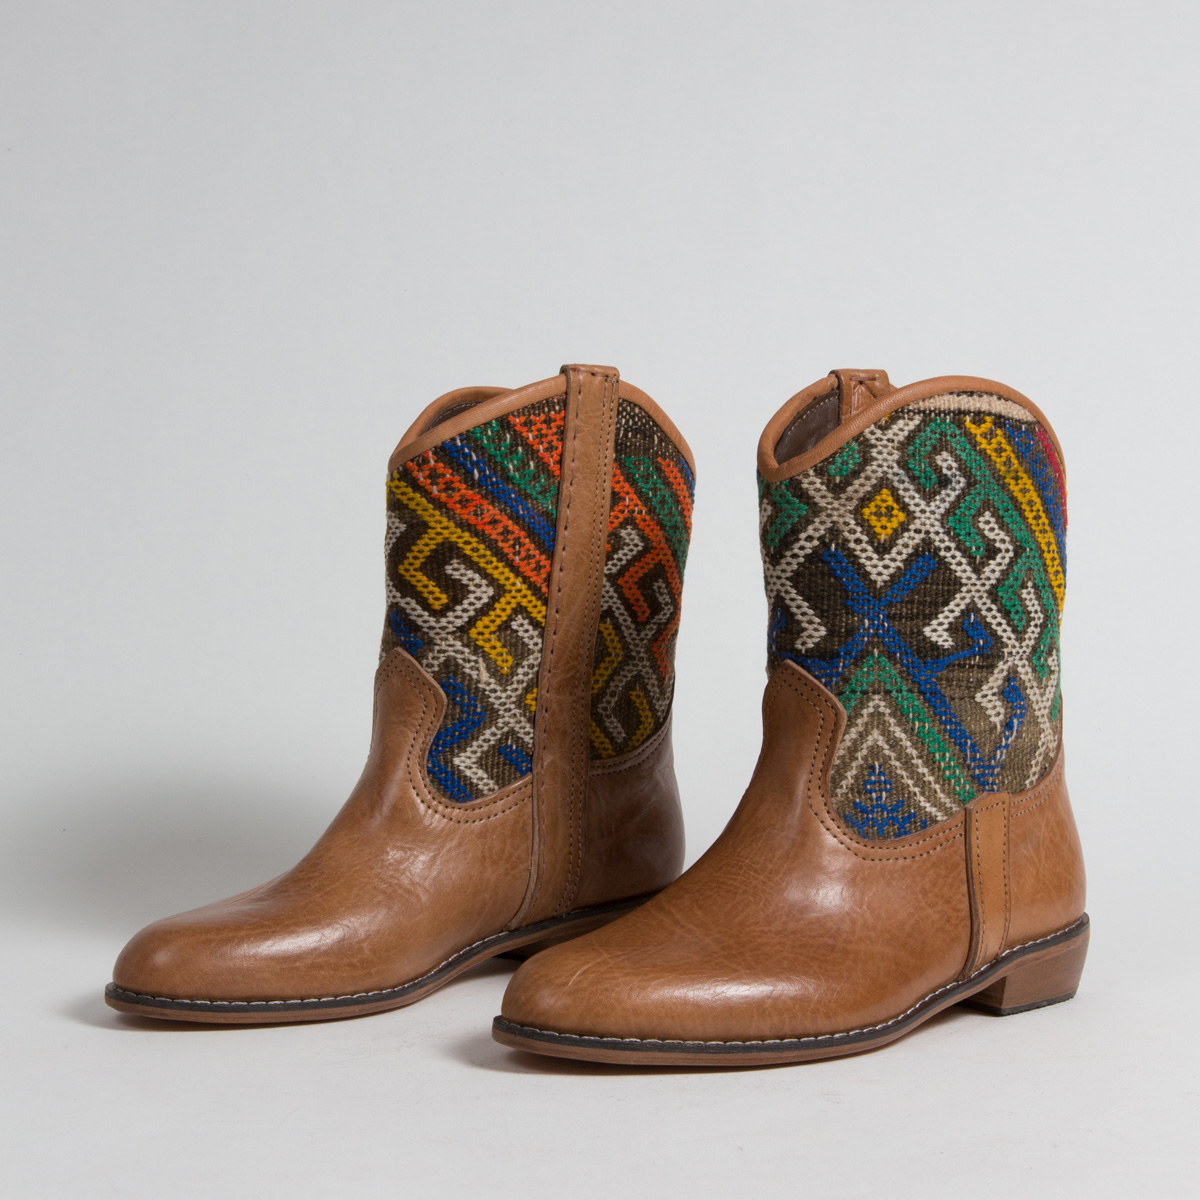 Bottines Kilim cuir mababouche artisanales (Réf. P7-39)